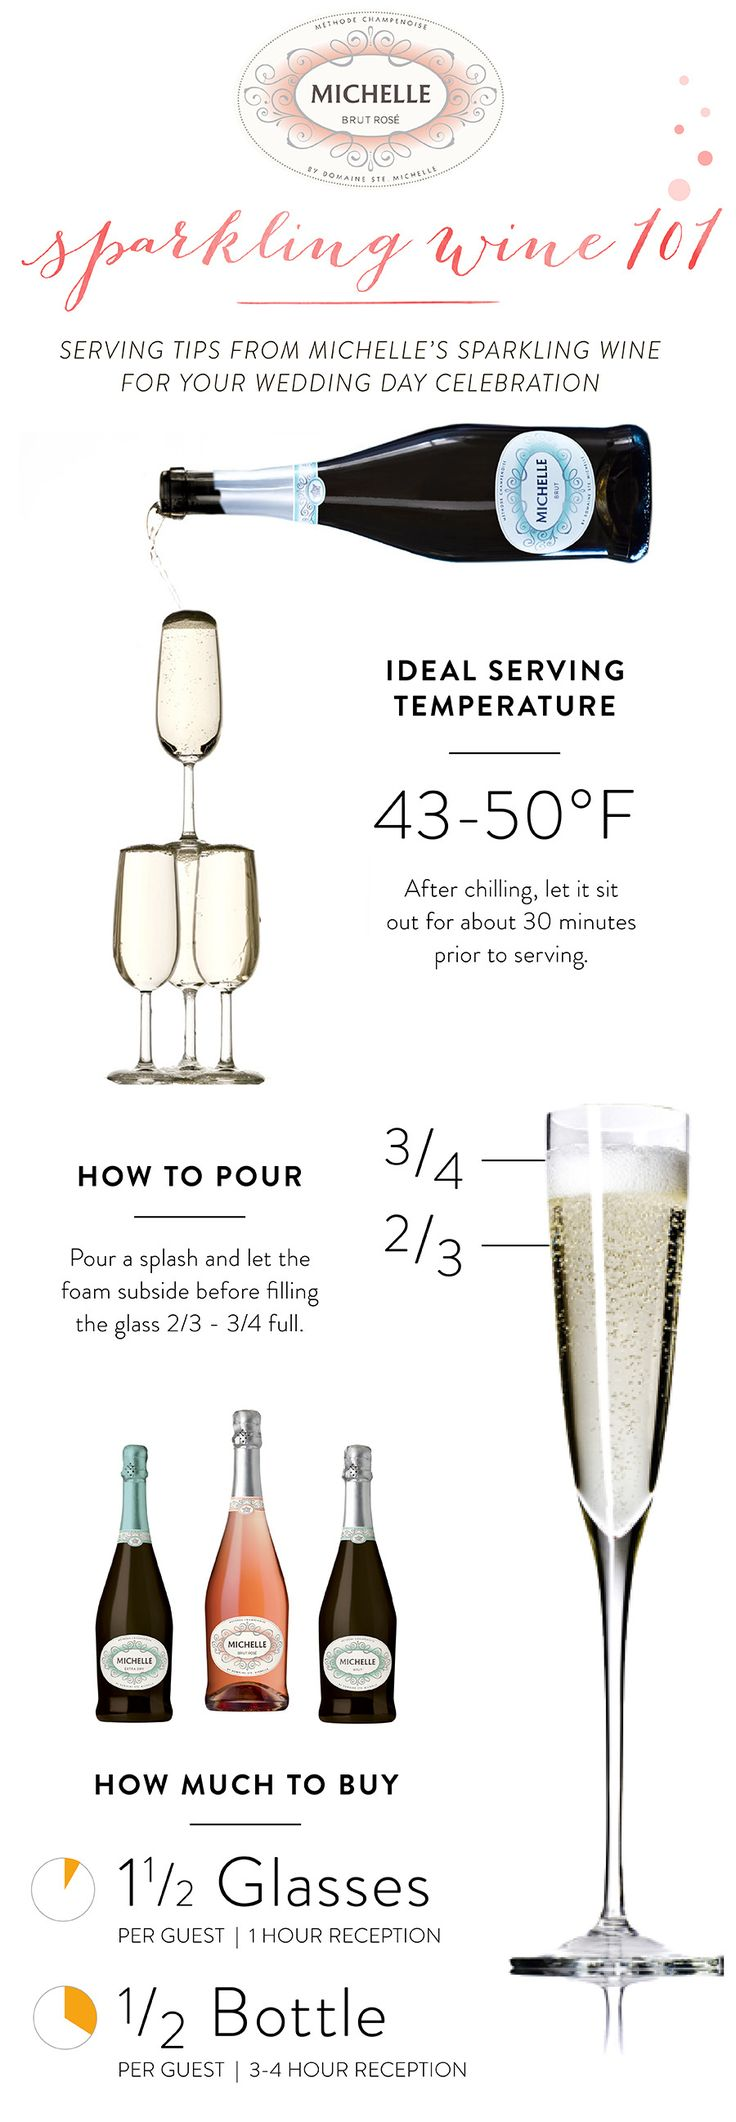 It's pretty clear, we love all things bubbly-related around these parts — but we have a certain affinity for Michelle Sparkling Wine! Perfect for everything from engagement party cocktails to wedding day toasts, their wines are seriously delicious. Today, we've partnered with them to share serving tips + tricks to make sure the cocktails are on point for…